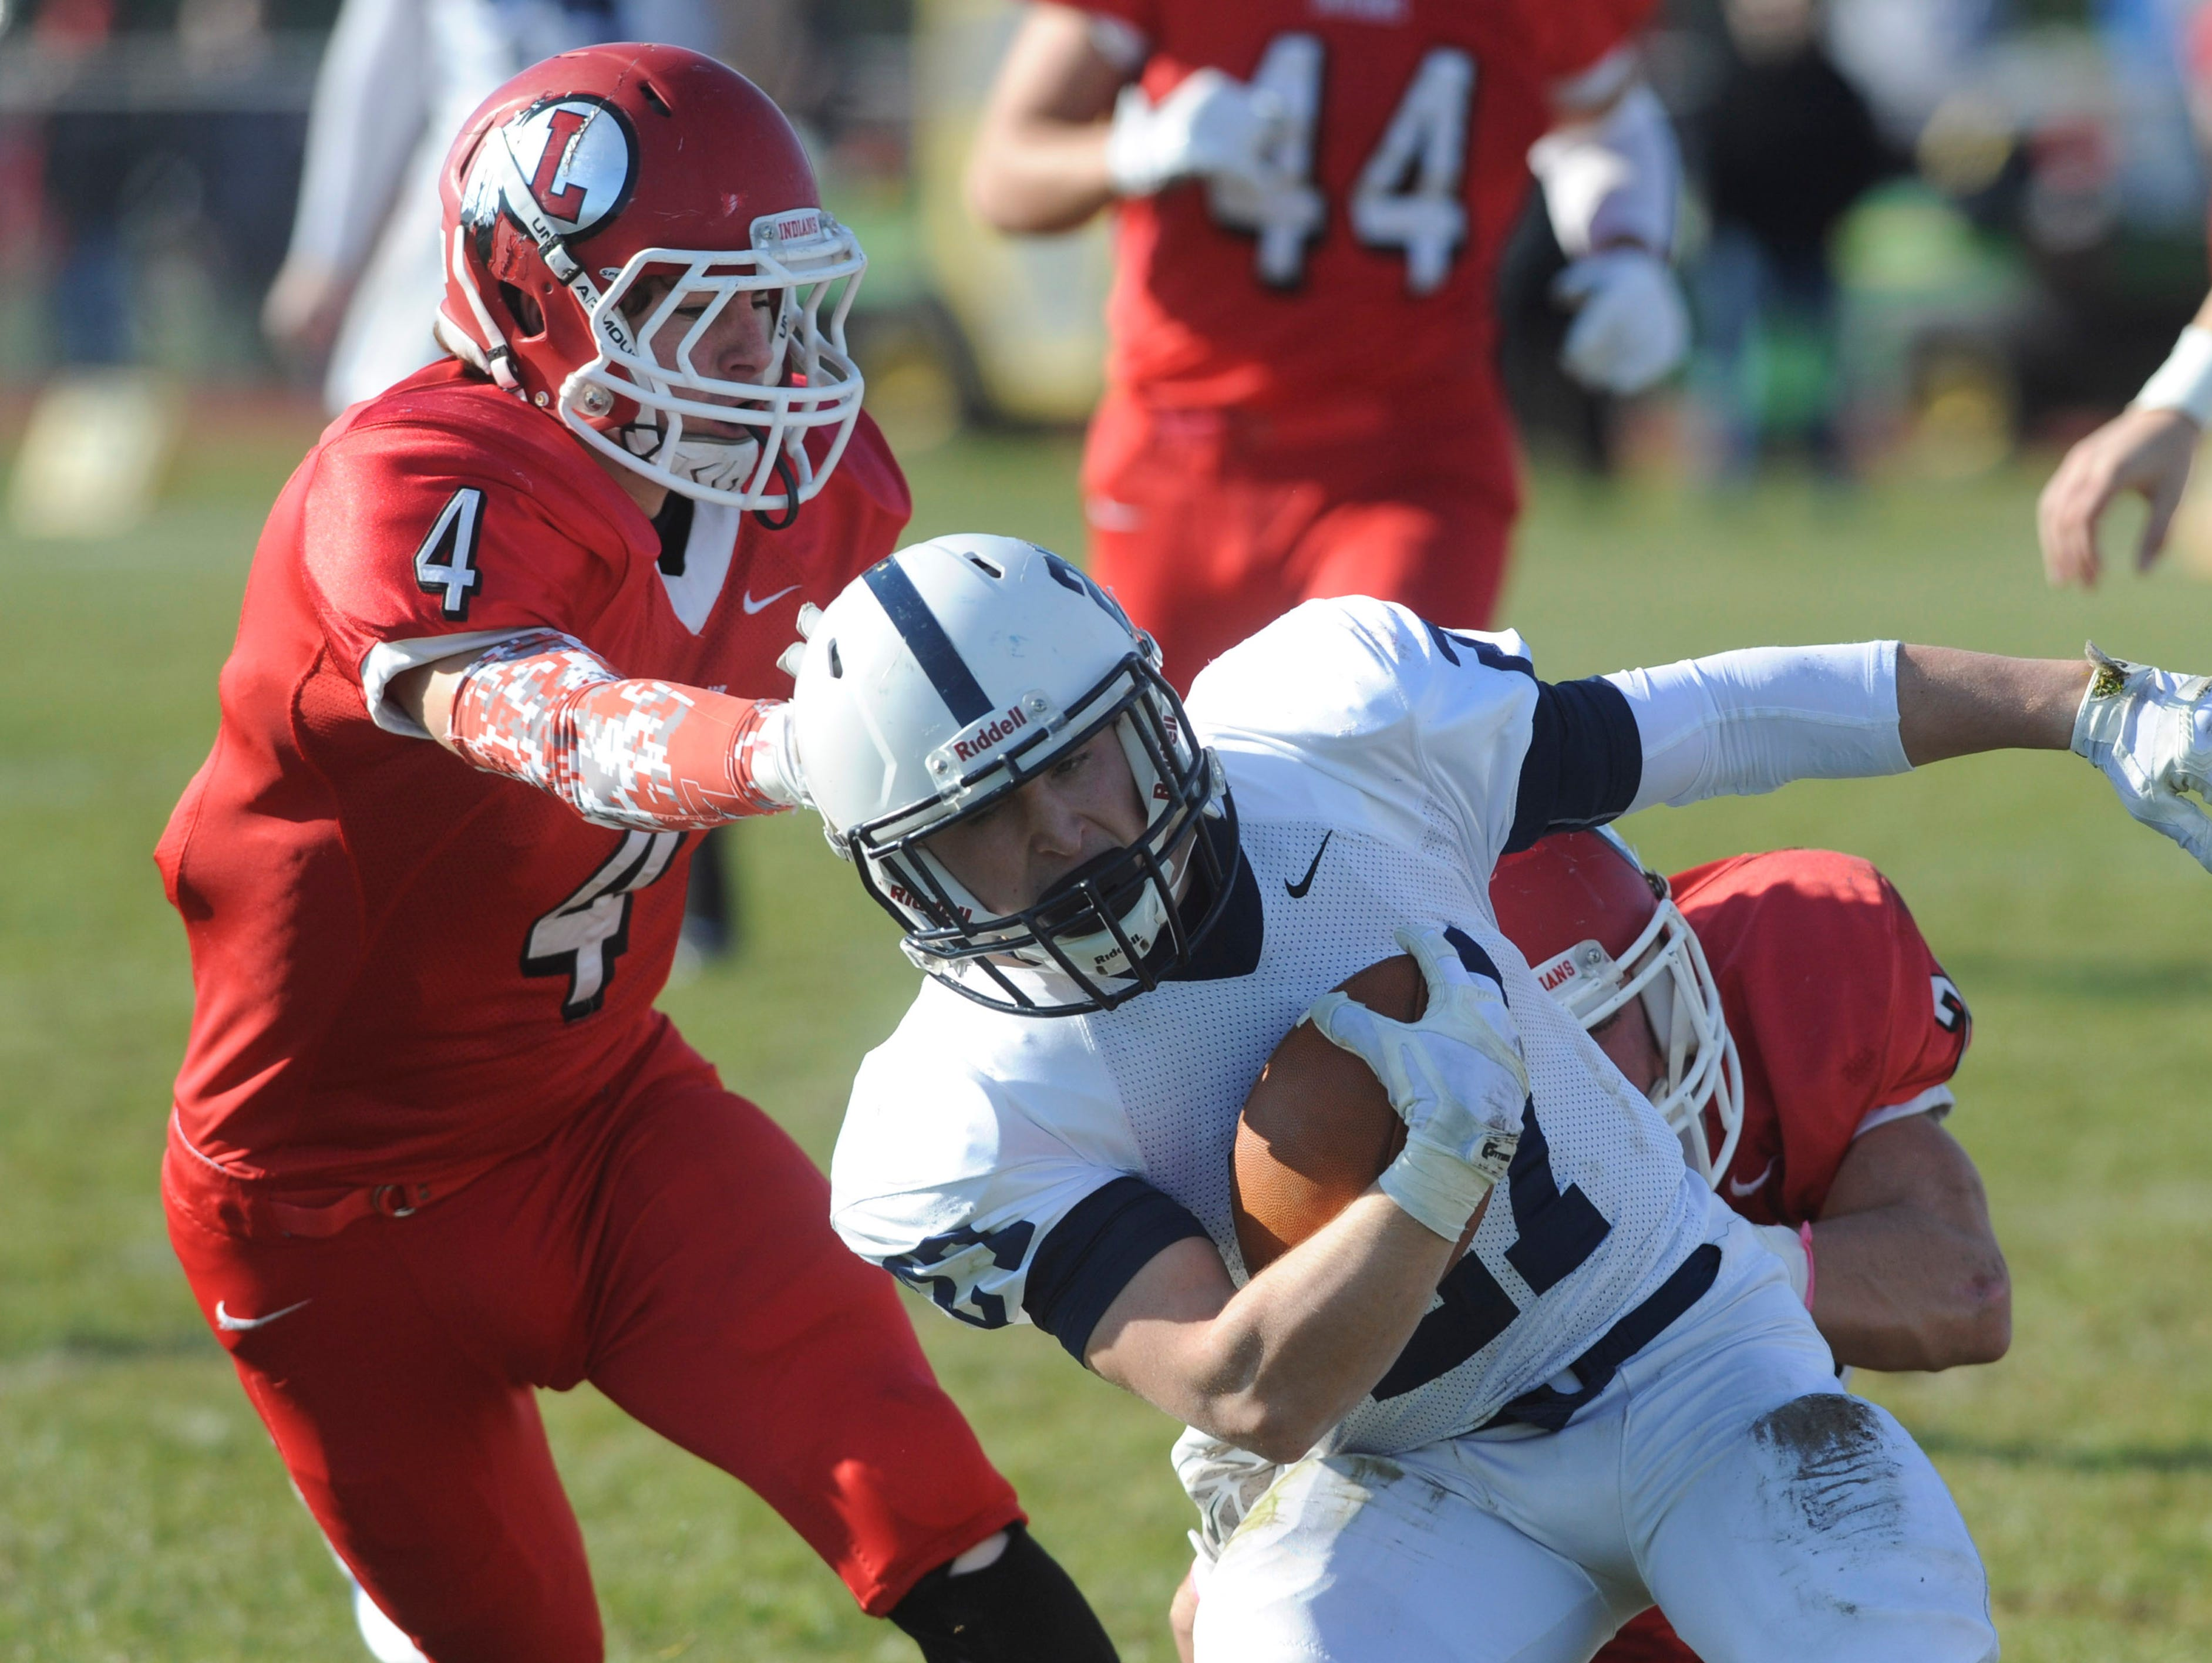 Shawnee's Michael Githens is brought down by Lenape's Ryan Shuts and Tim Montgomery (left) during Thursday's Thanksgiving Day football game at Lenape. Thursday, November 26, 2015.